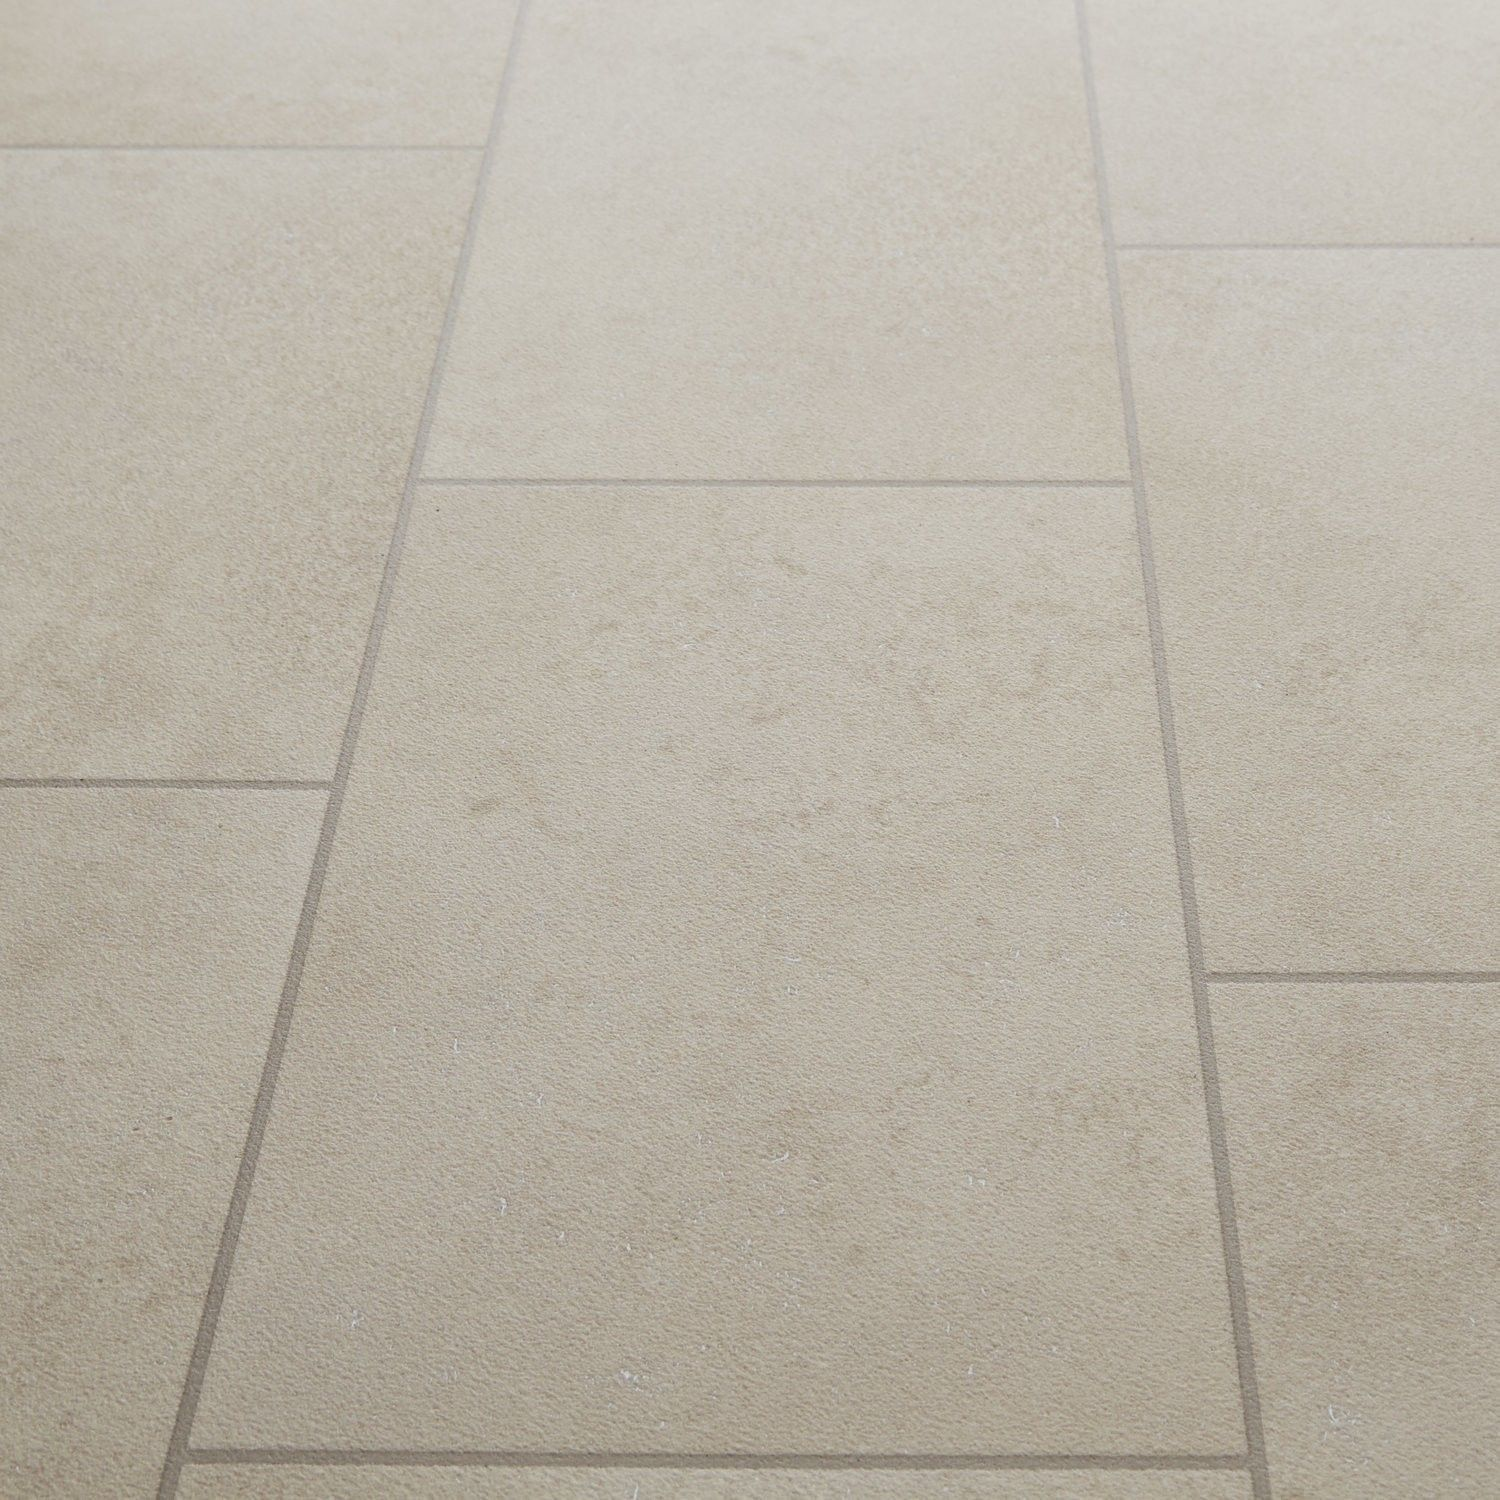 503 Gallerie Stone Tile Effect Vinyl Flooring